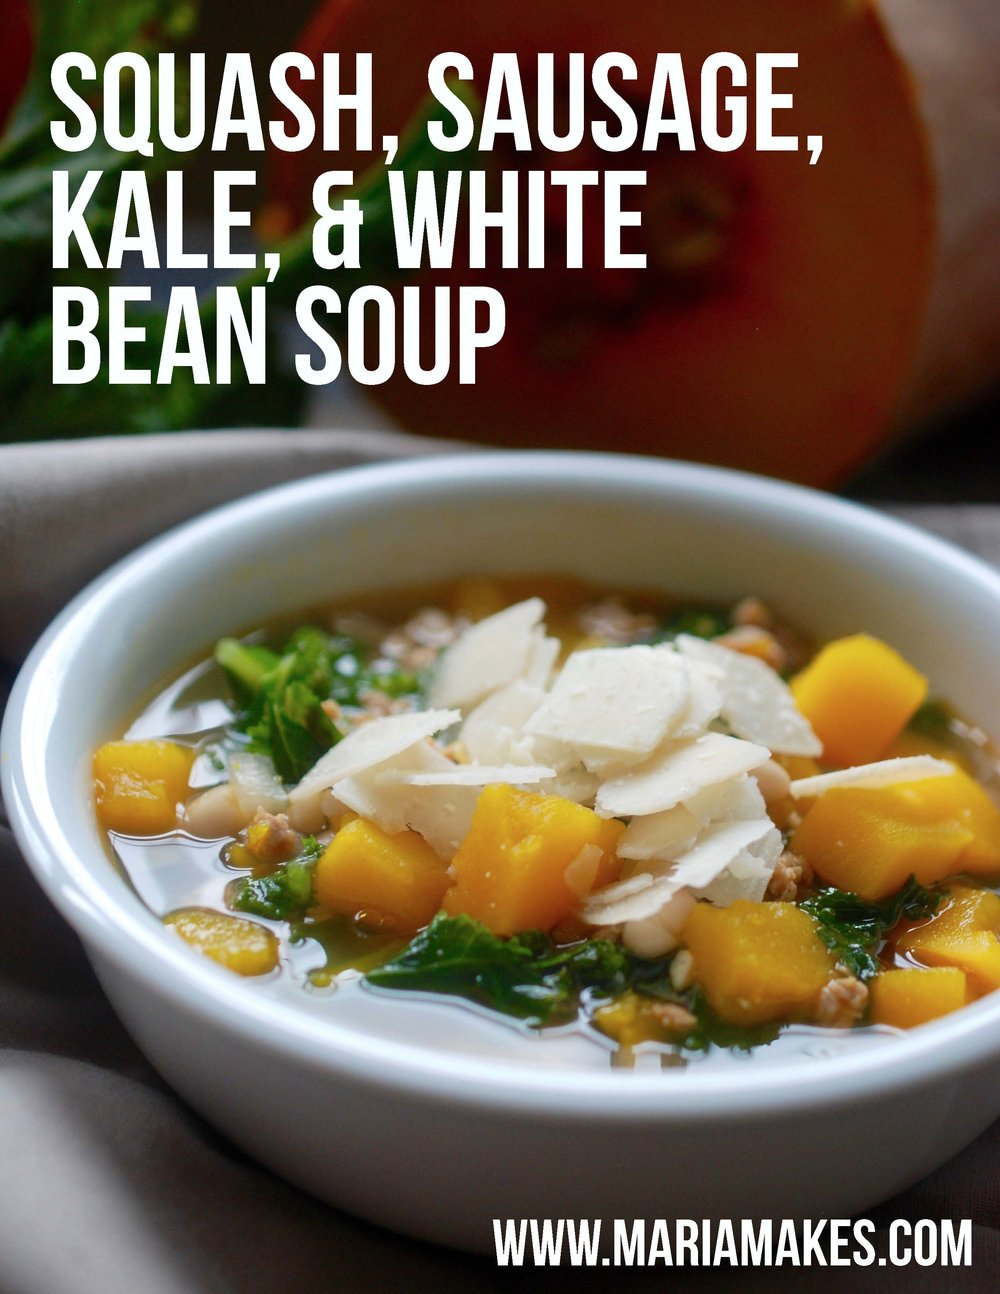 Squash, Sausage, Kale & White Bean Soup – Maria Makes